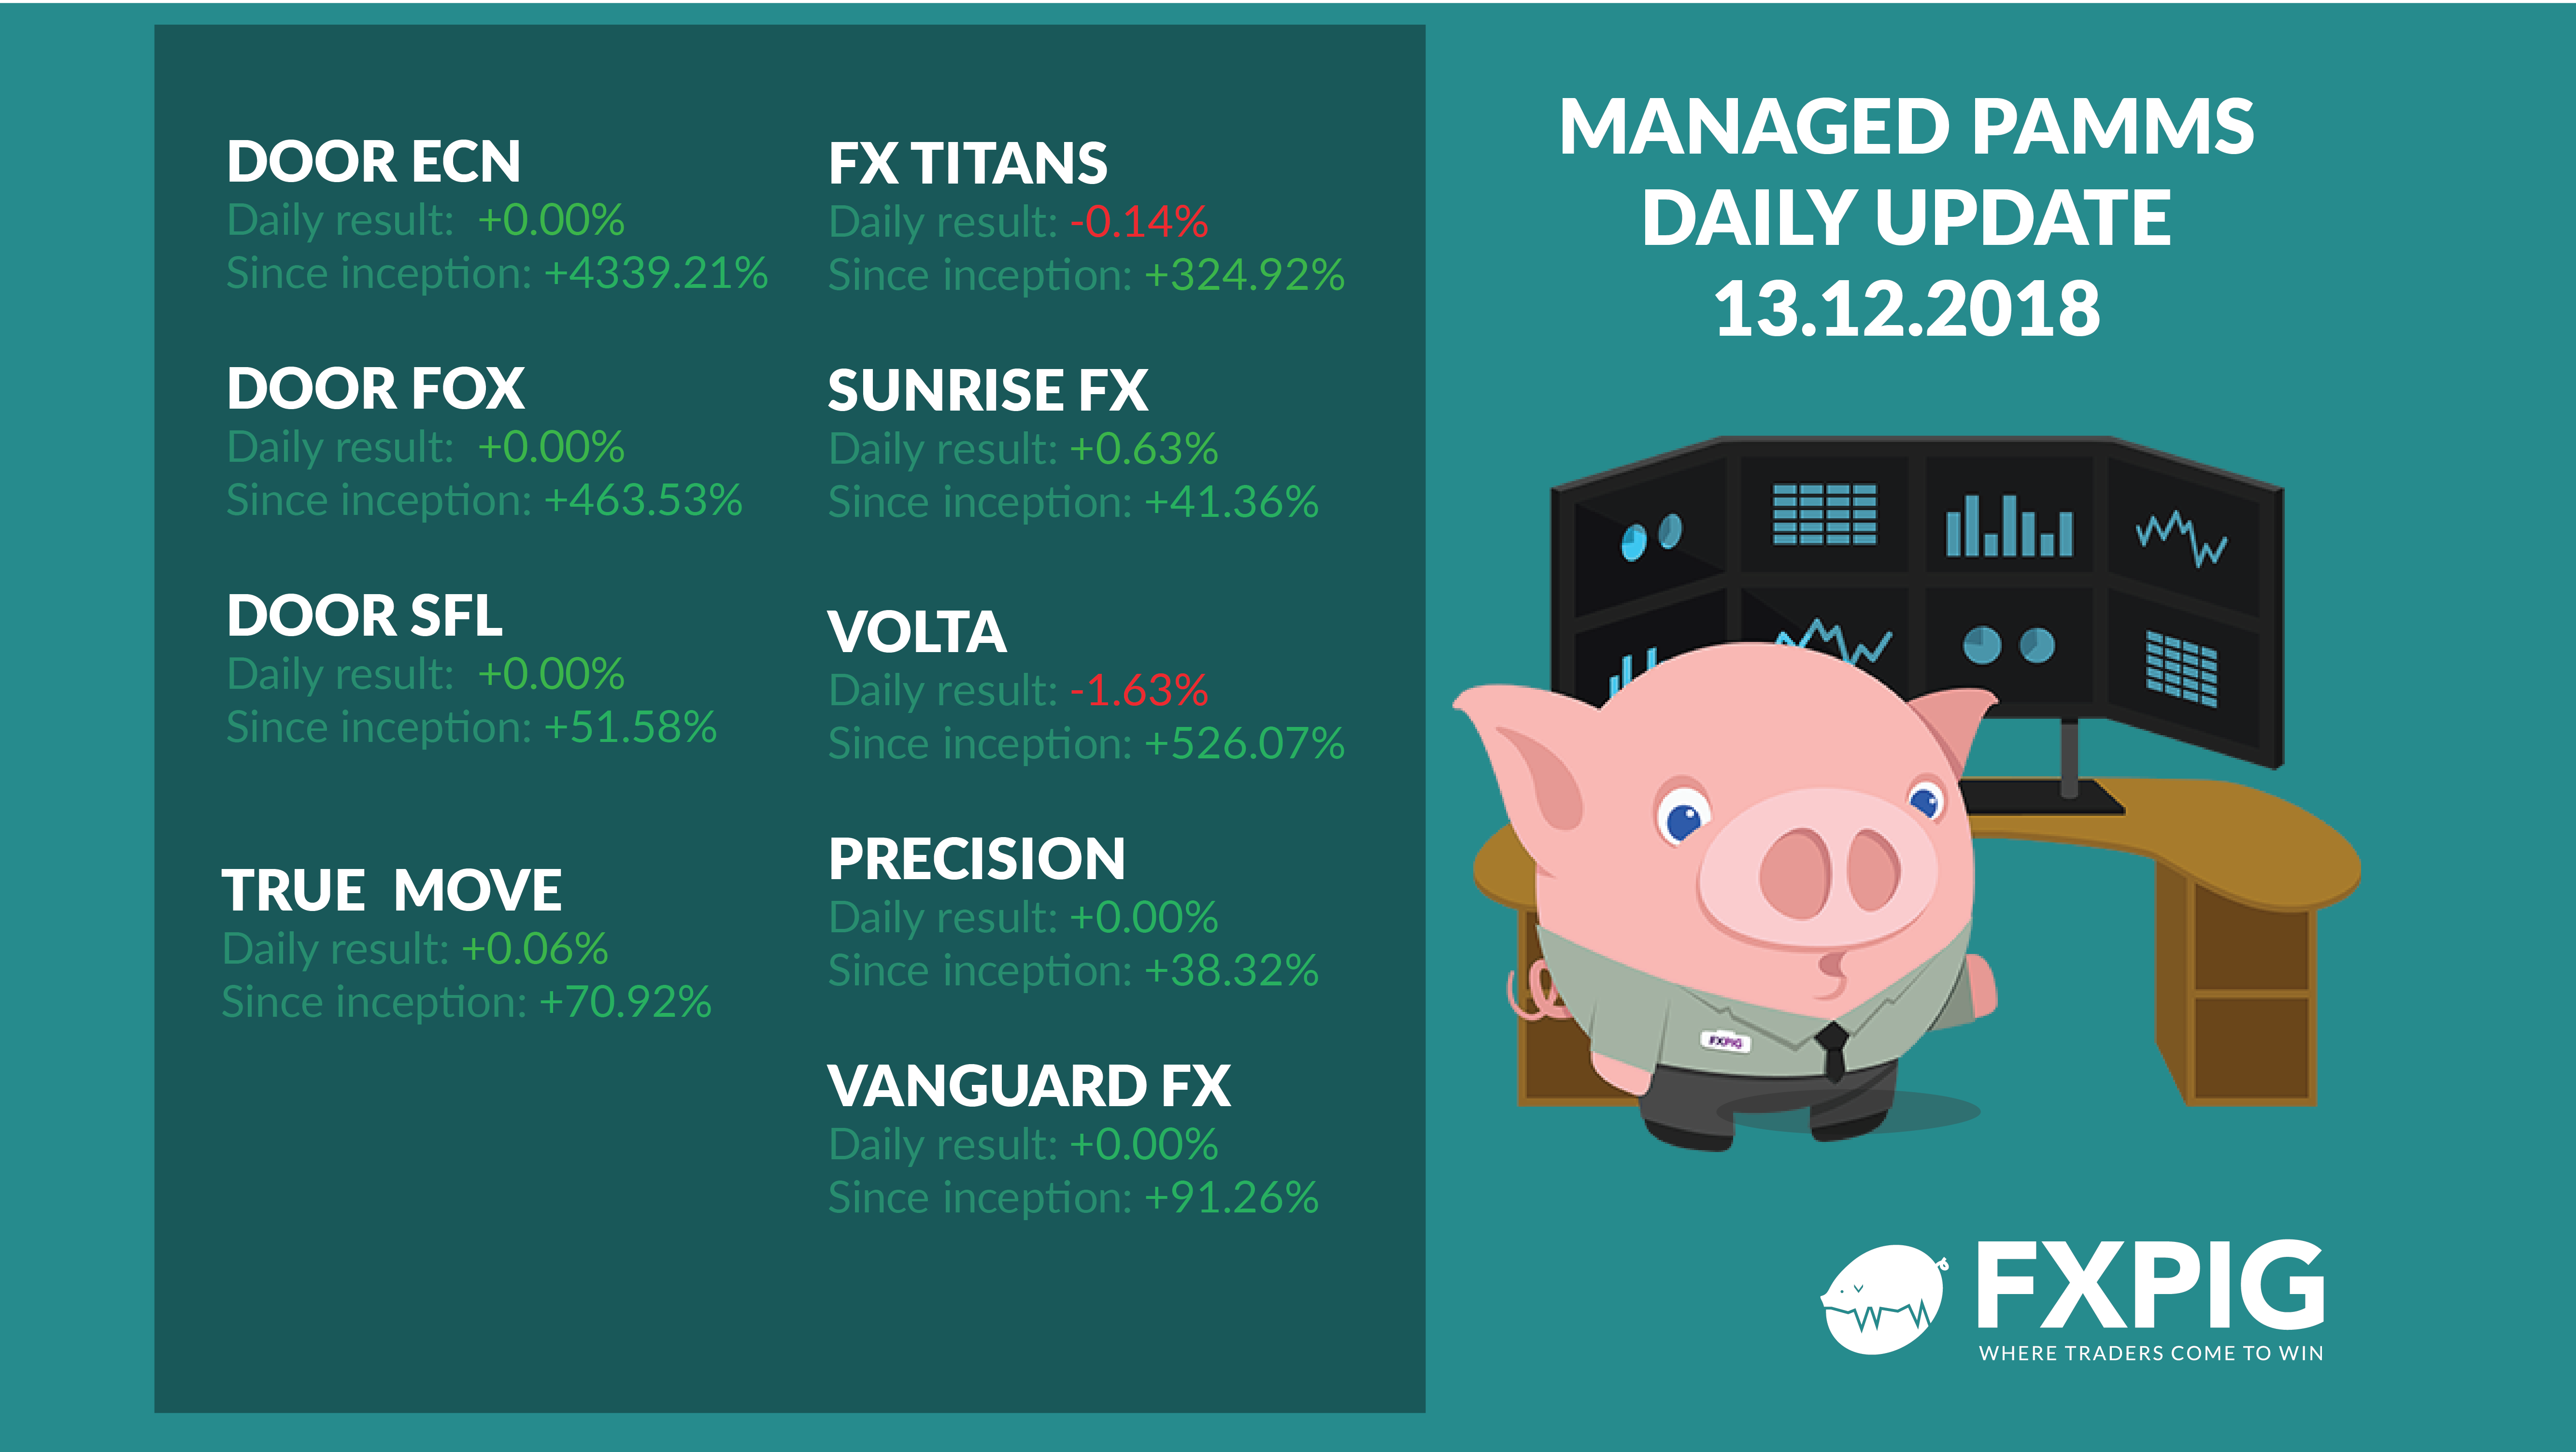 Forex_Trading_Fx_Trader_FXPIG_PAMMS_MANAGED_ACCOUNTS_PROFIT_13.12.2018